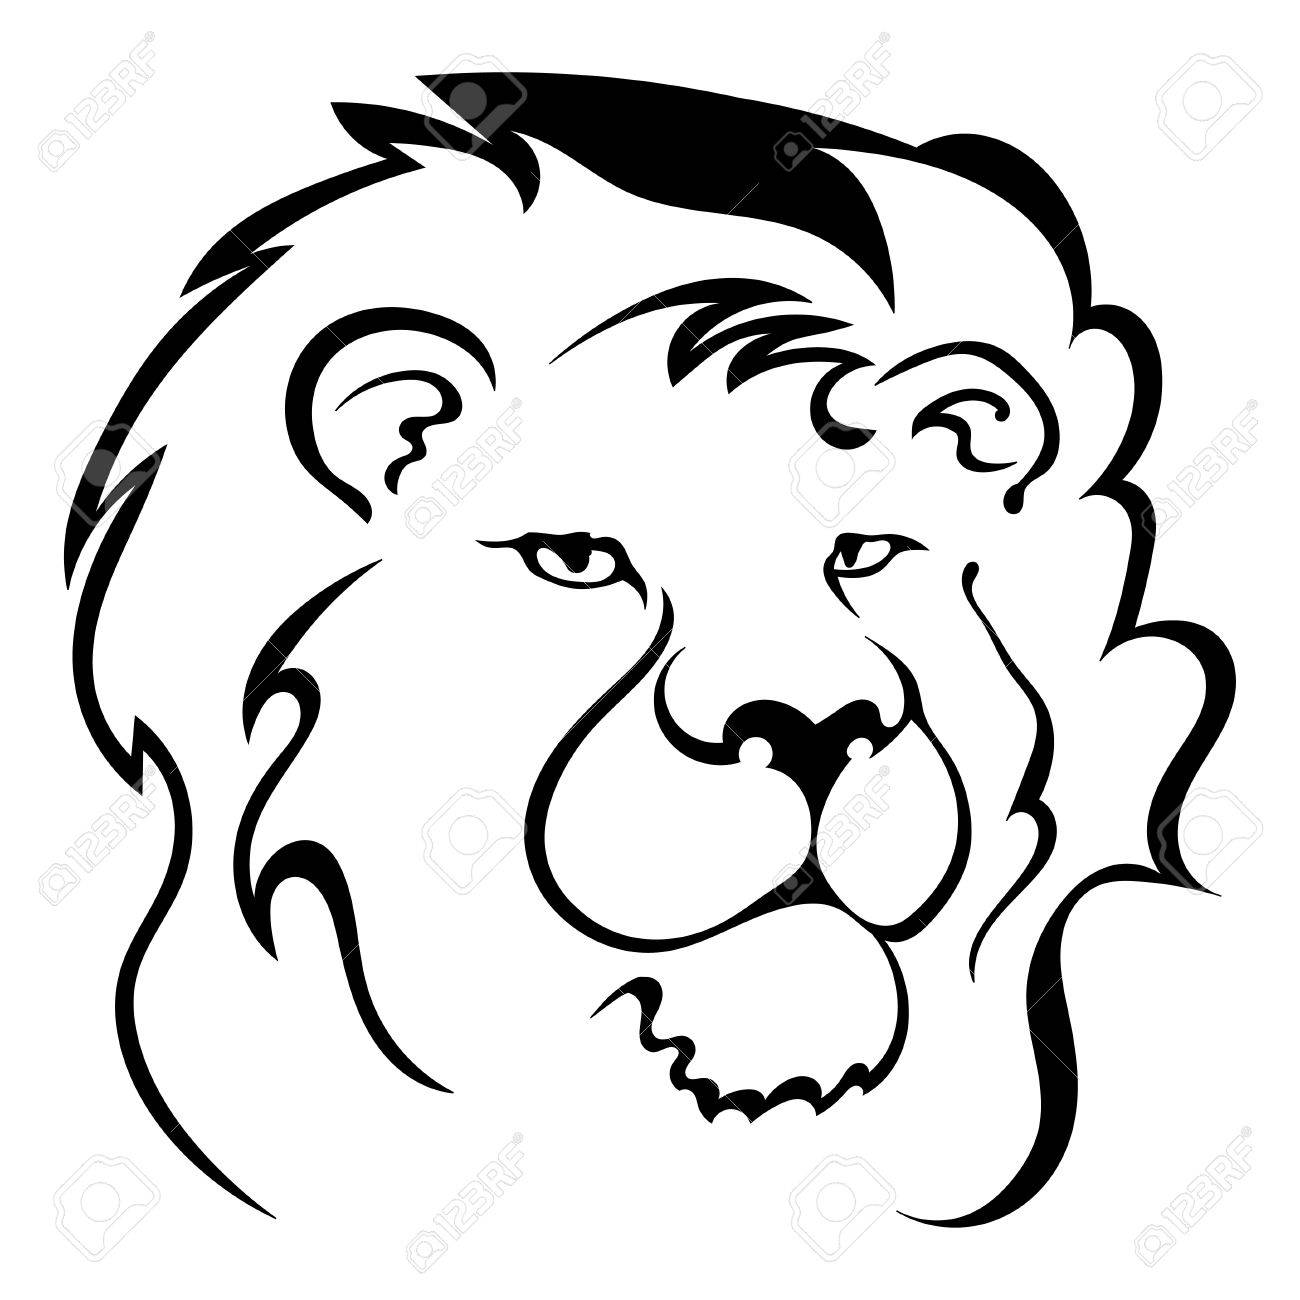 1300x1300 Silhouette Of A Lion's Head. Symbol Of The Greatness And Pride